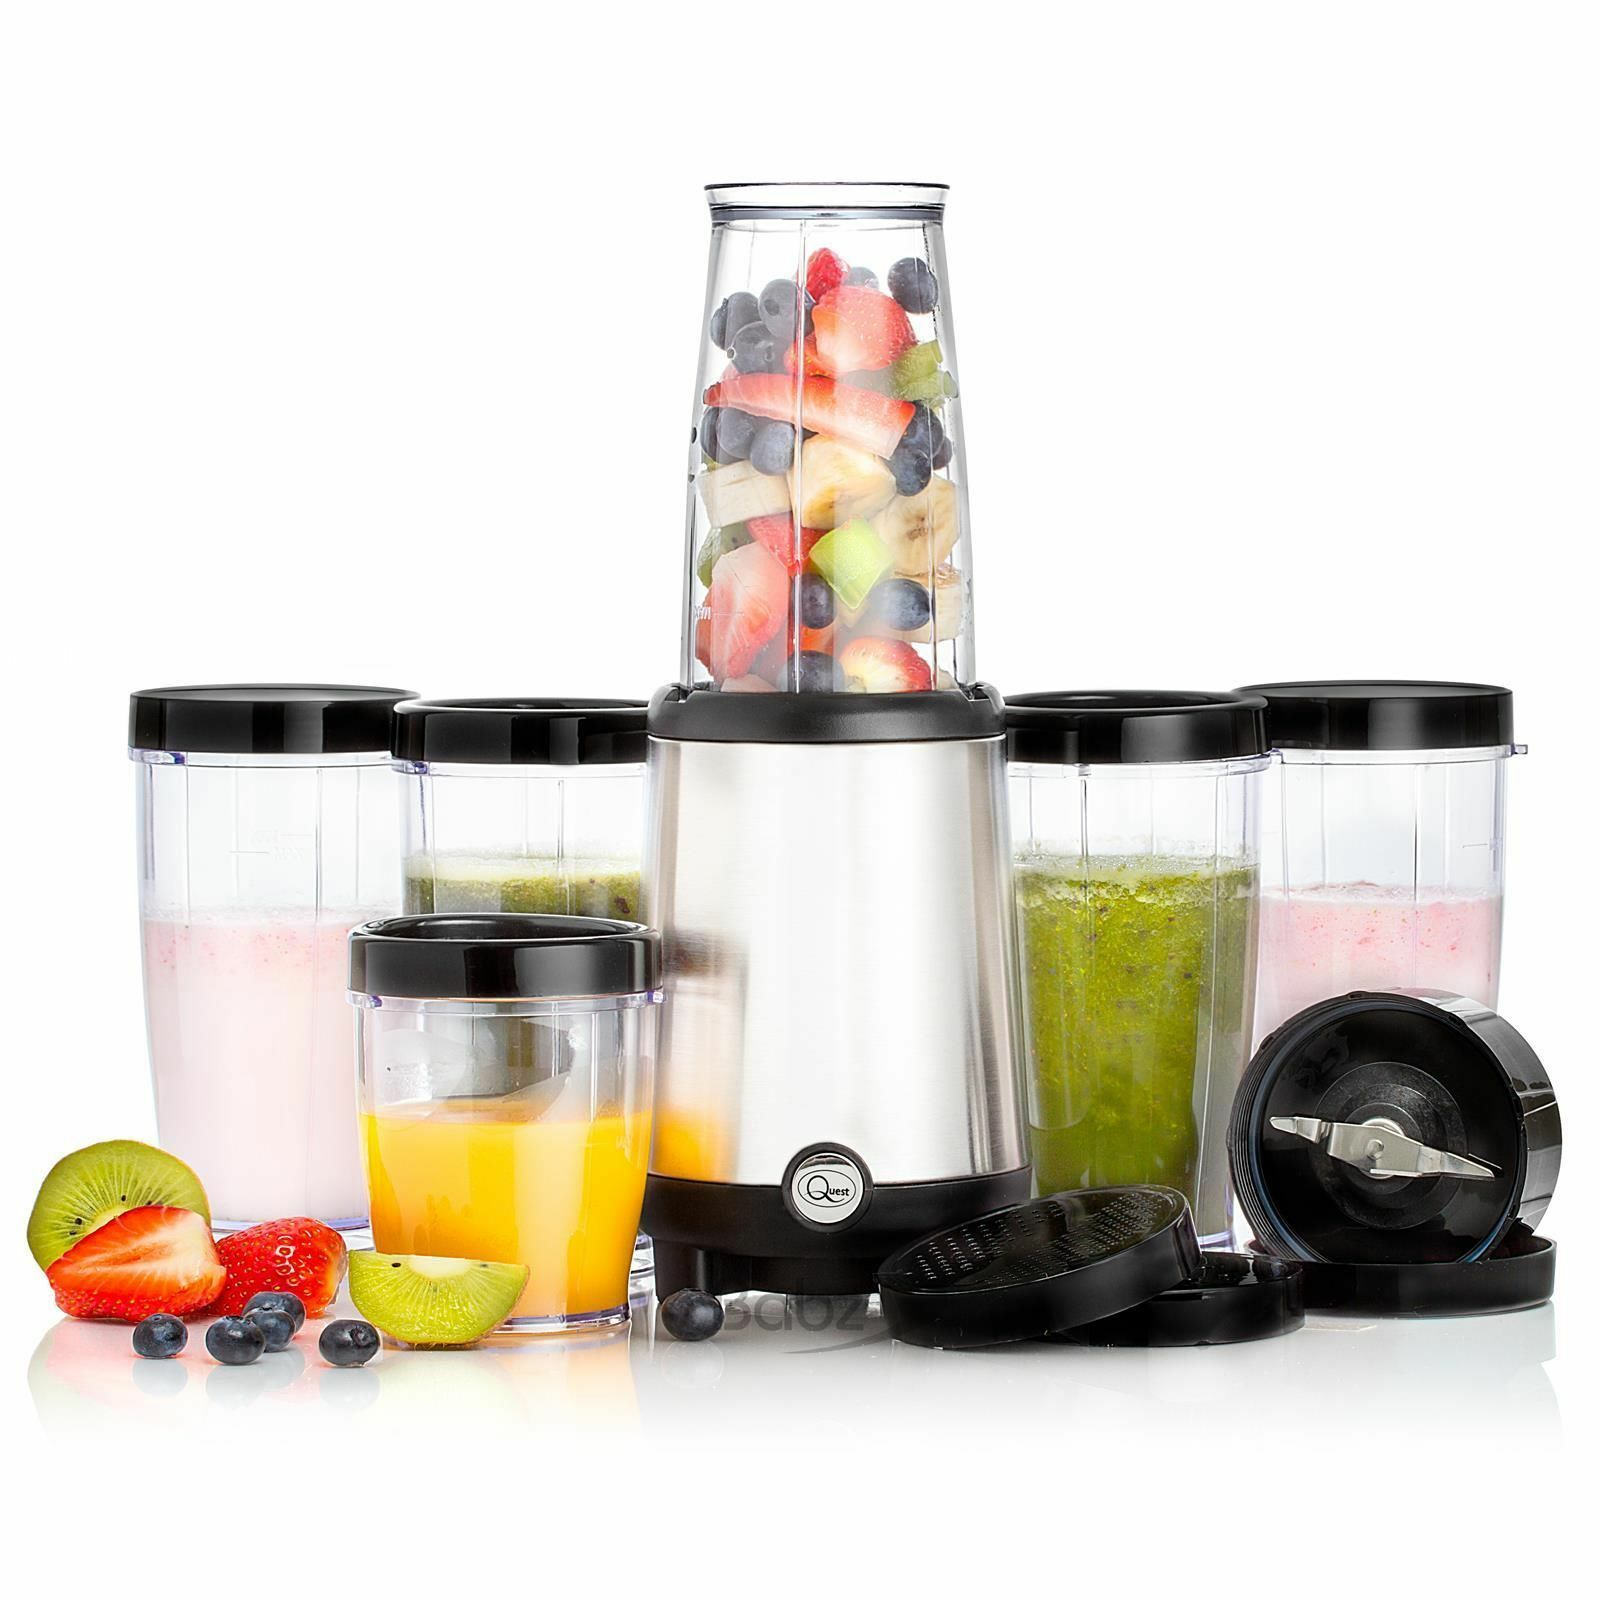 17 pcs fruit vegetable veg juicer blender chopper smoothie juicer juice maker ebay. Black Bedroom Furniture Sets. Home Design Ideas